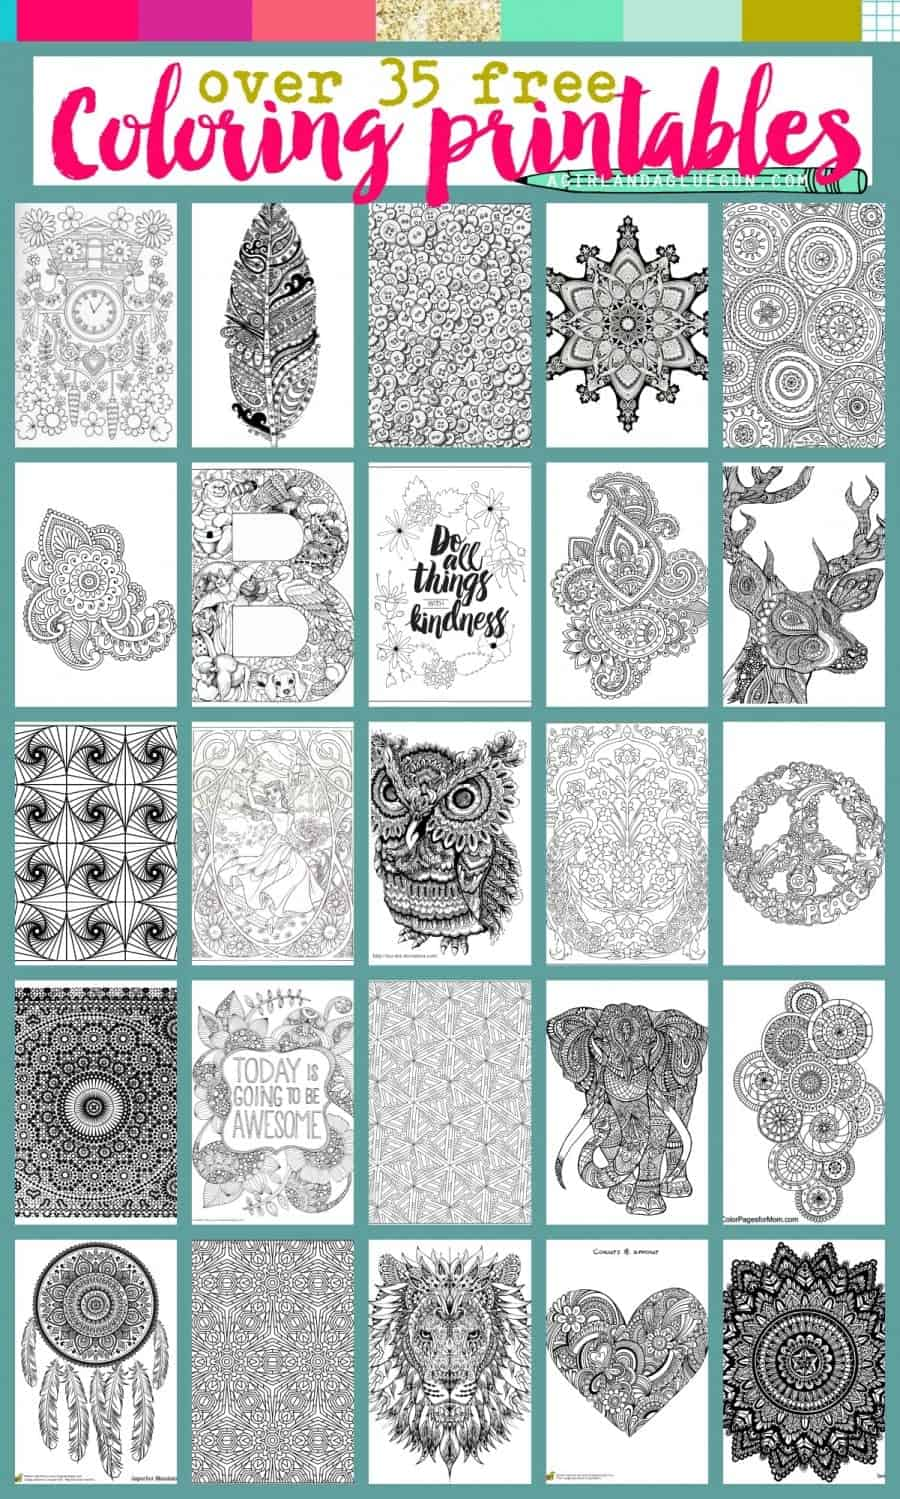 35 free coloring printables for adult coloring. Awesome prints and pages